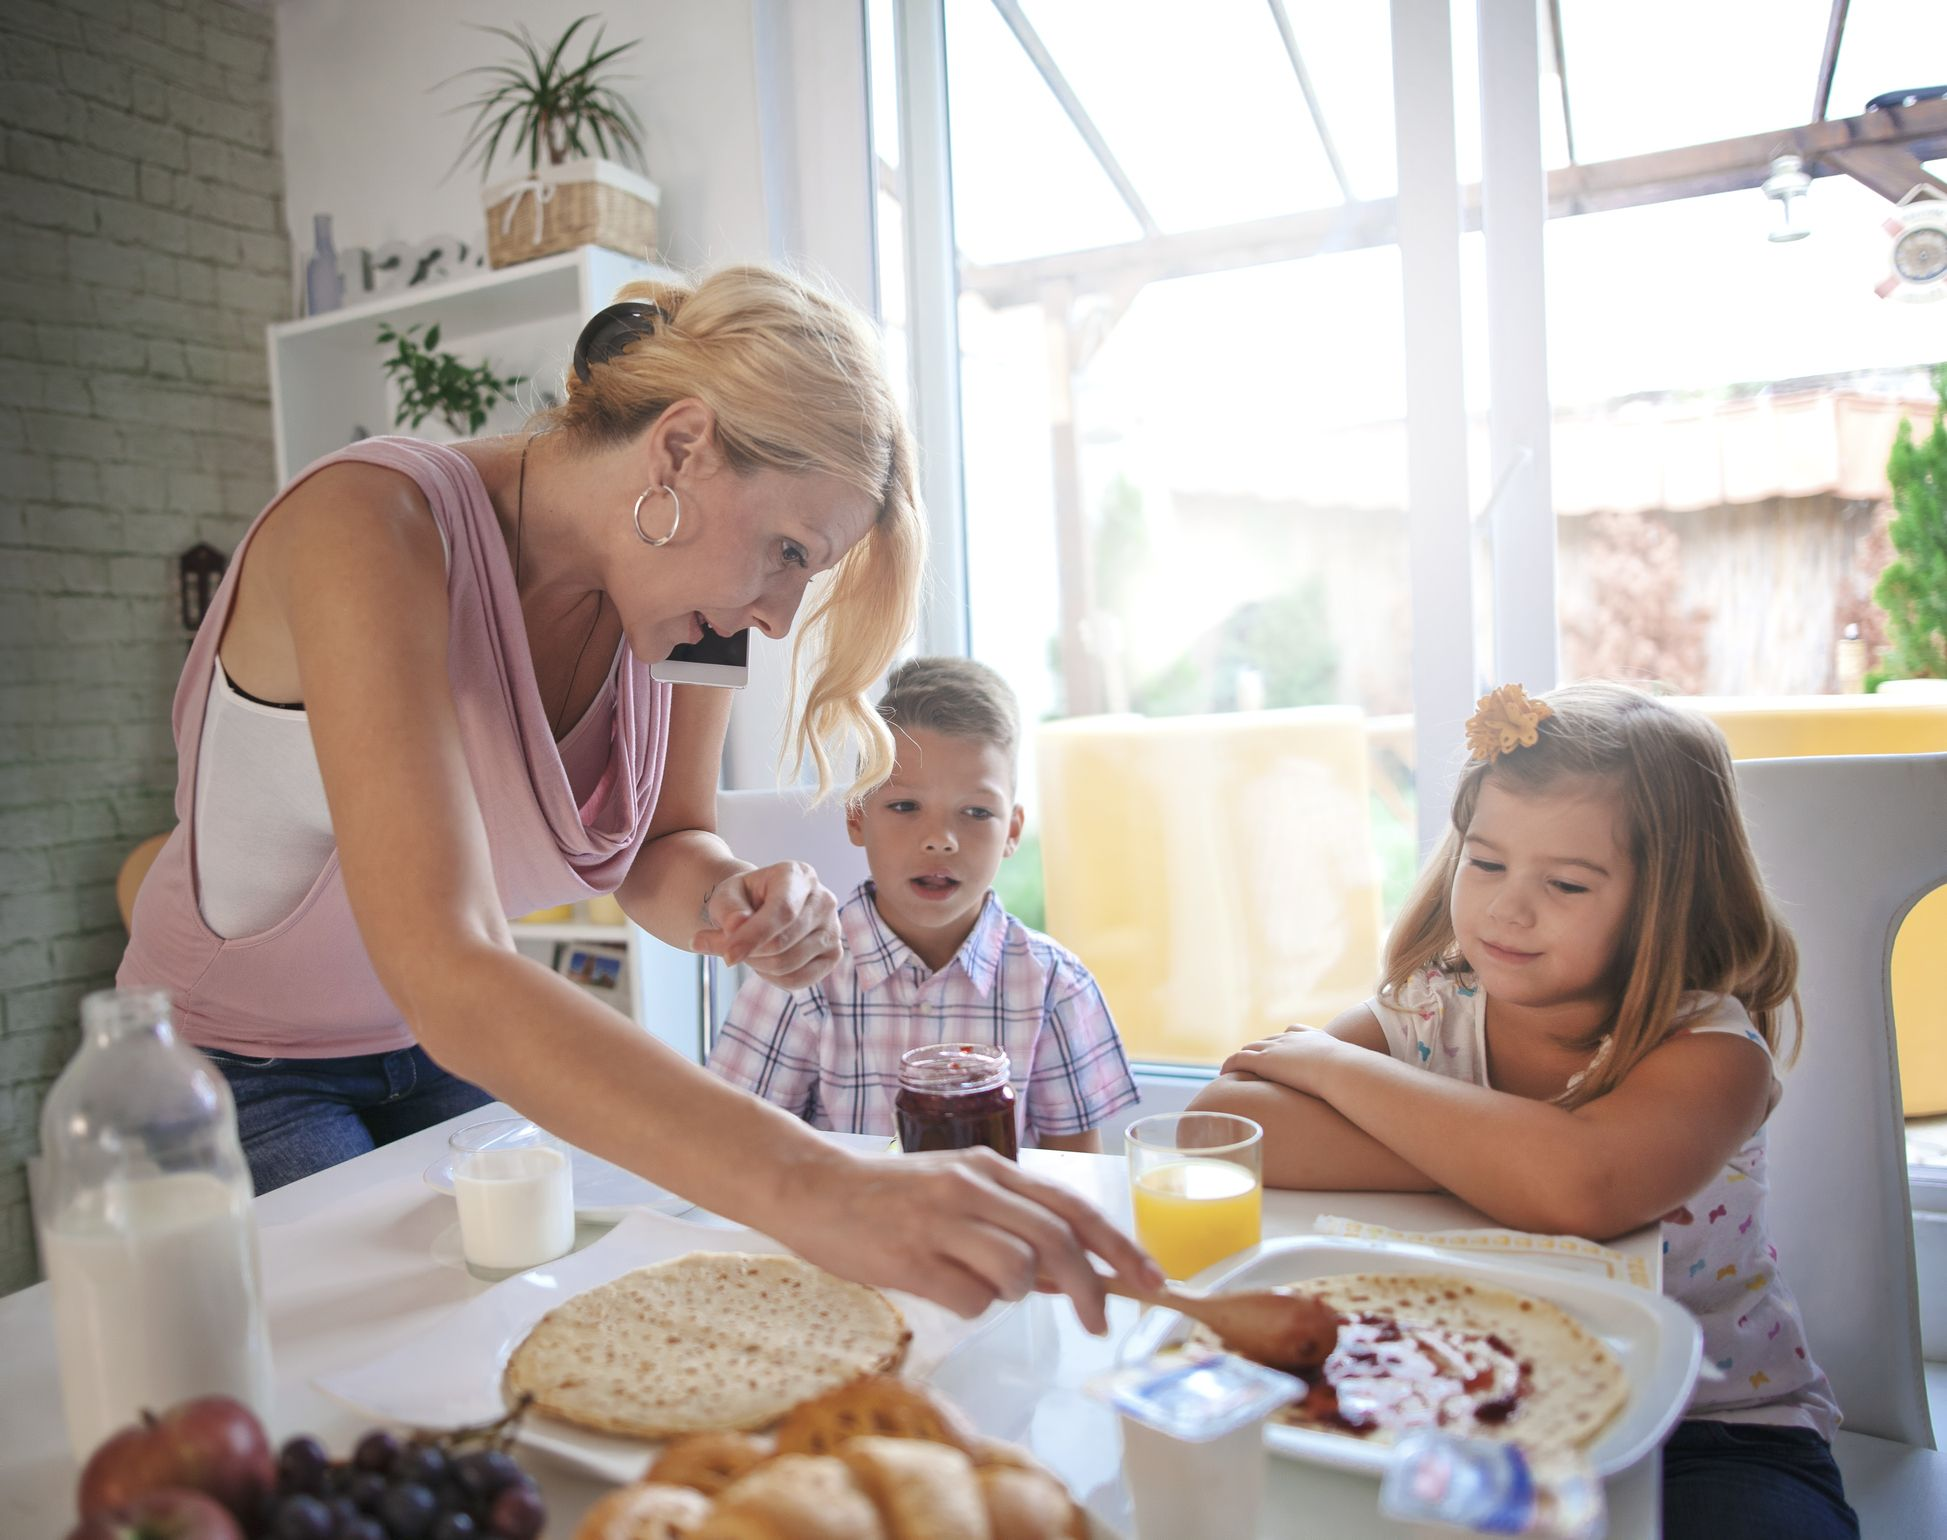 Why Helicopter Parents Stunt a Child's Self-Reliance